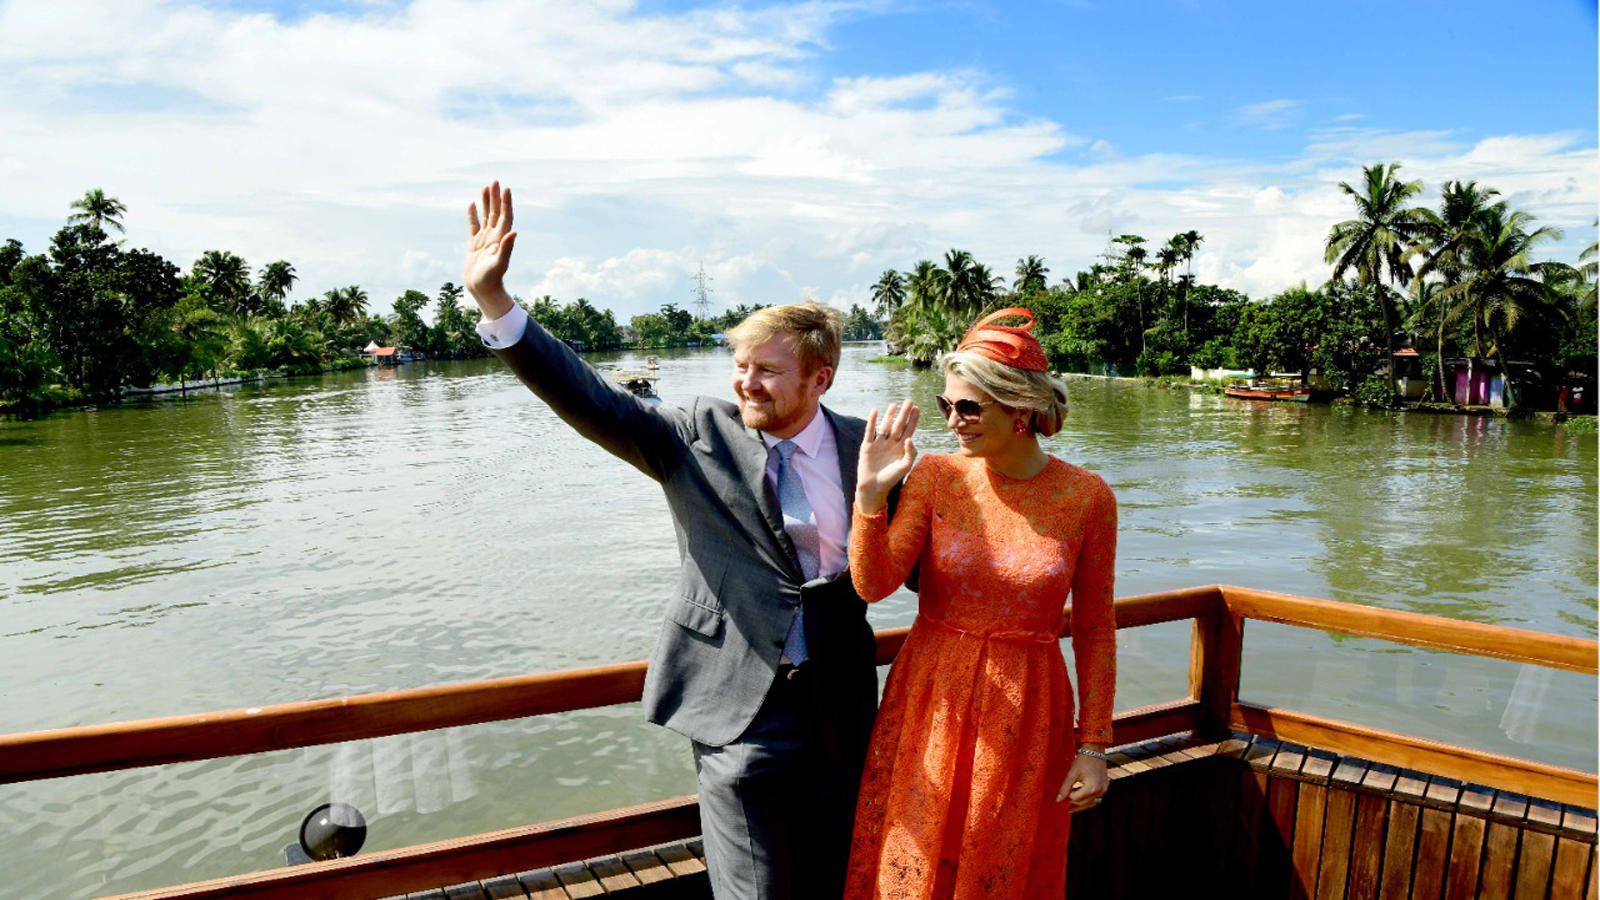 dutch-king-and-queen-enjoy-backwaters-in-keralas-alappuzha